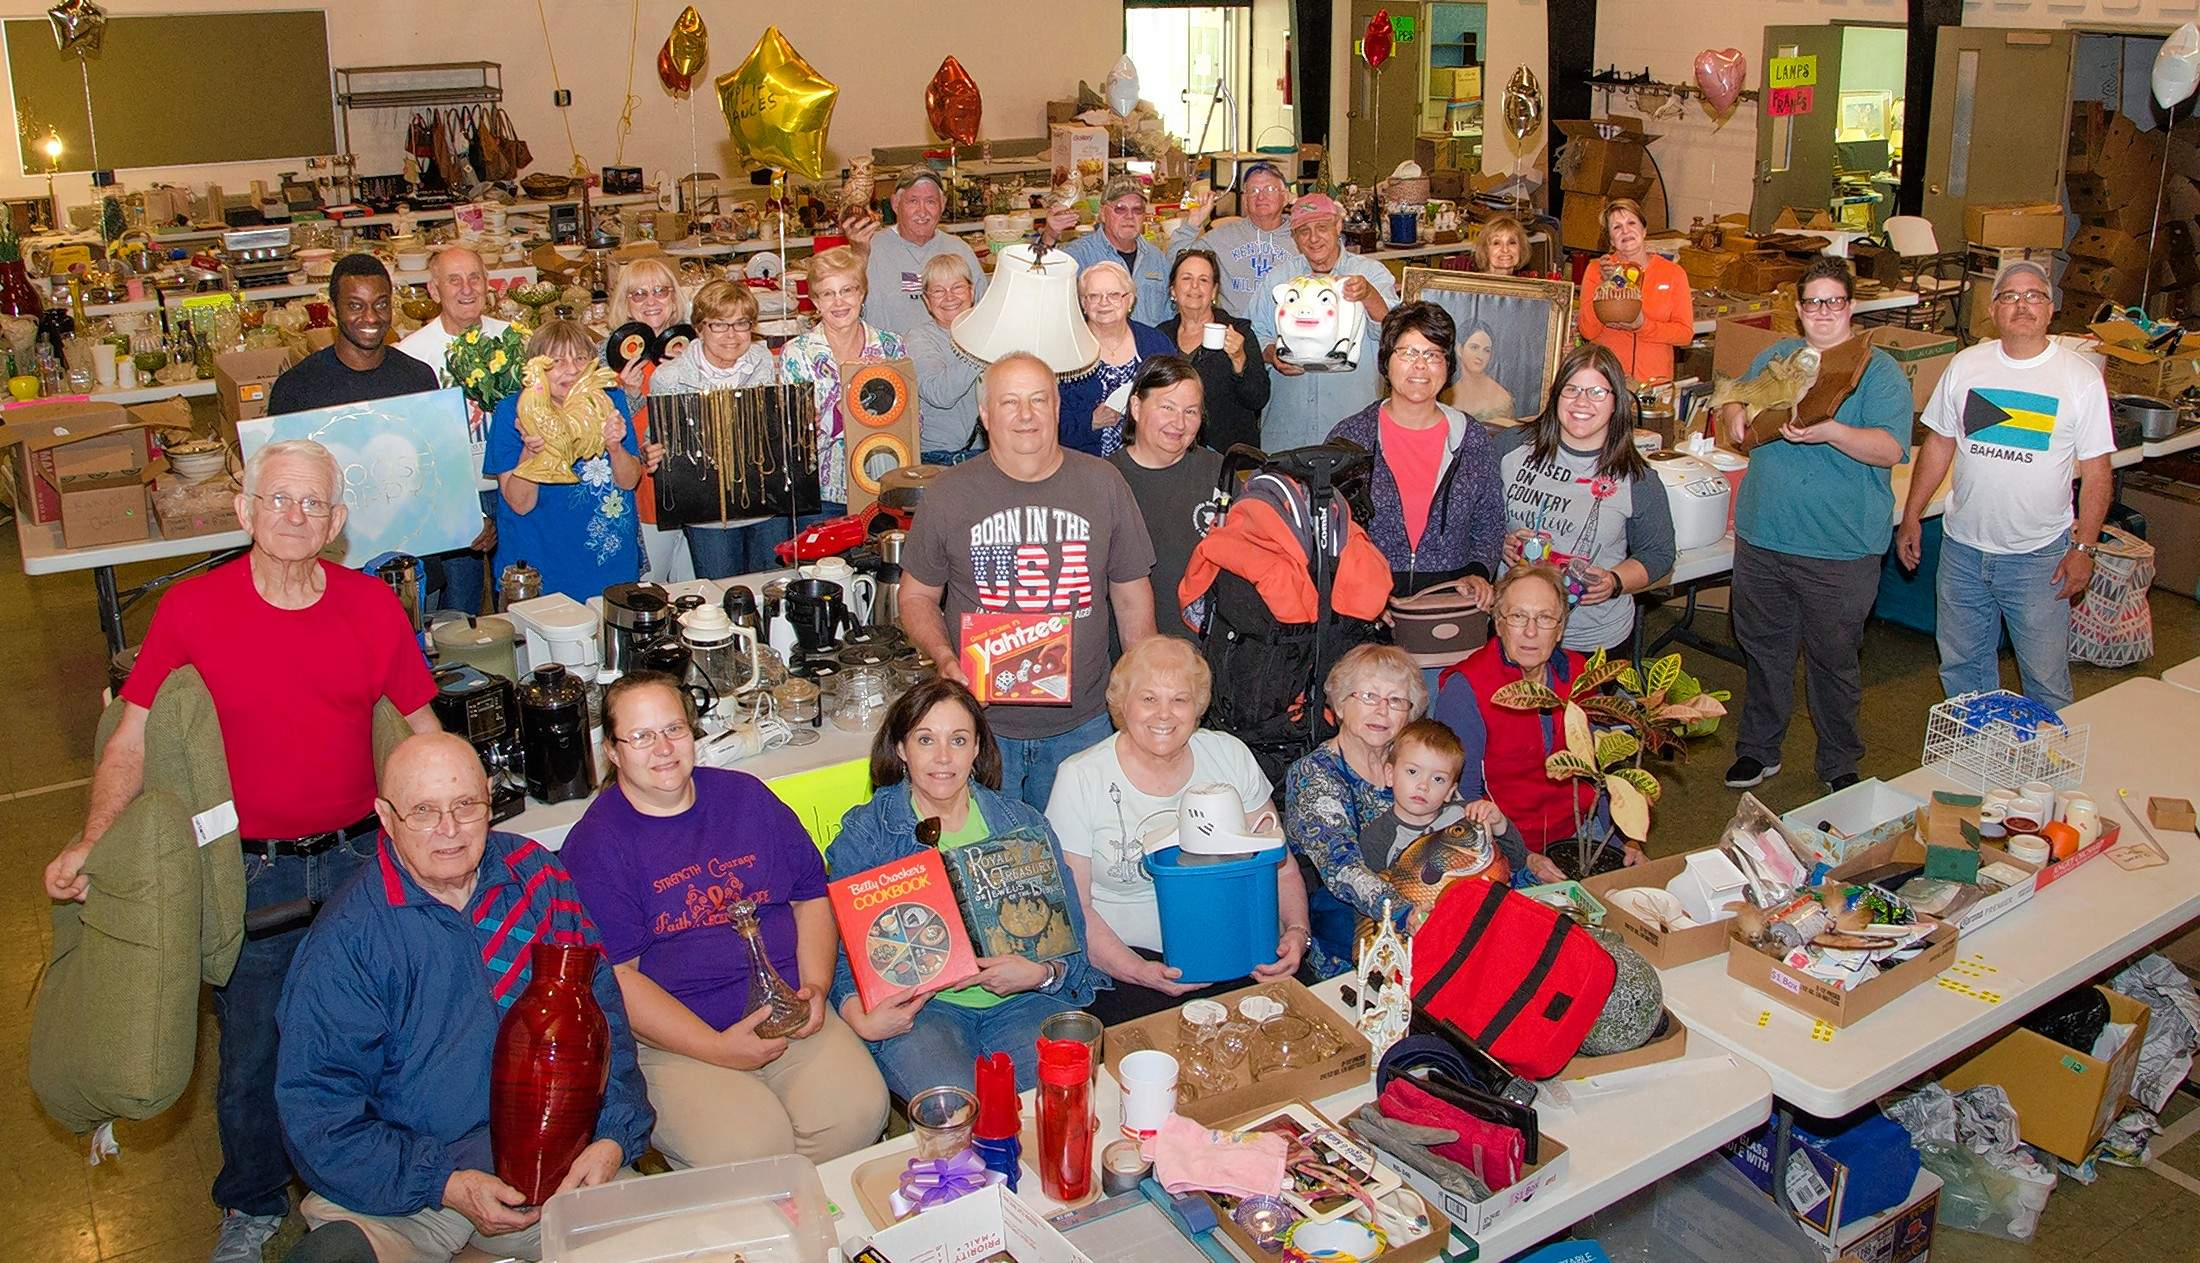 Members of St. Joseph's Catholic Church sort and organize donations for the 13th-annual flea market coming up this Saturday.